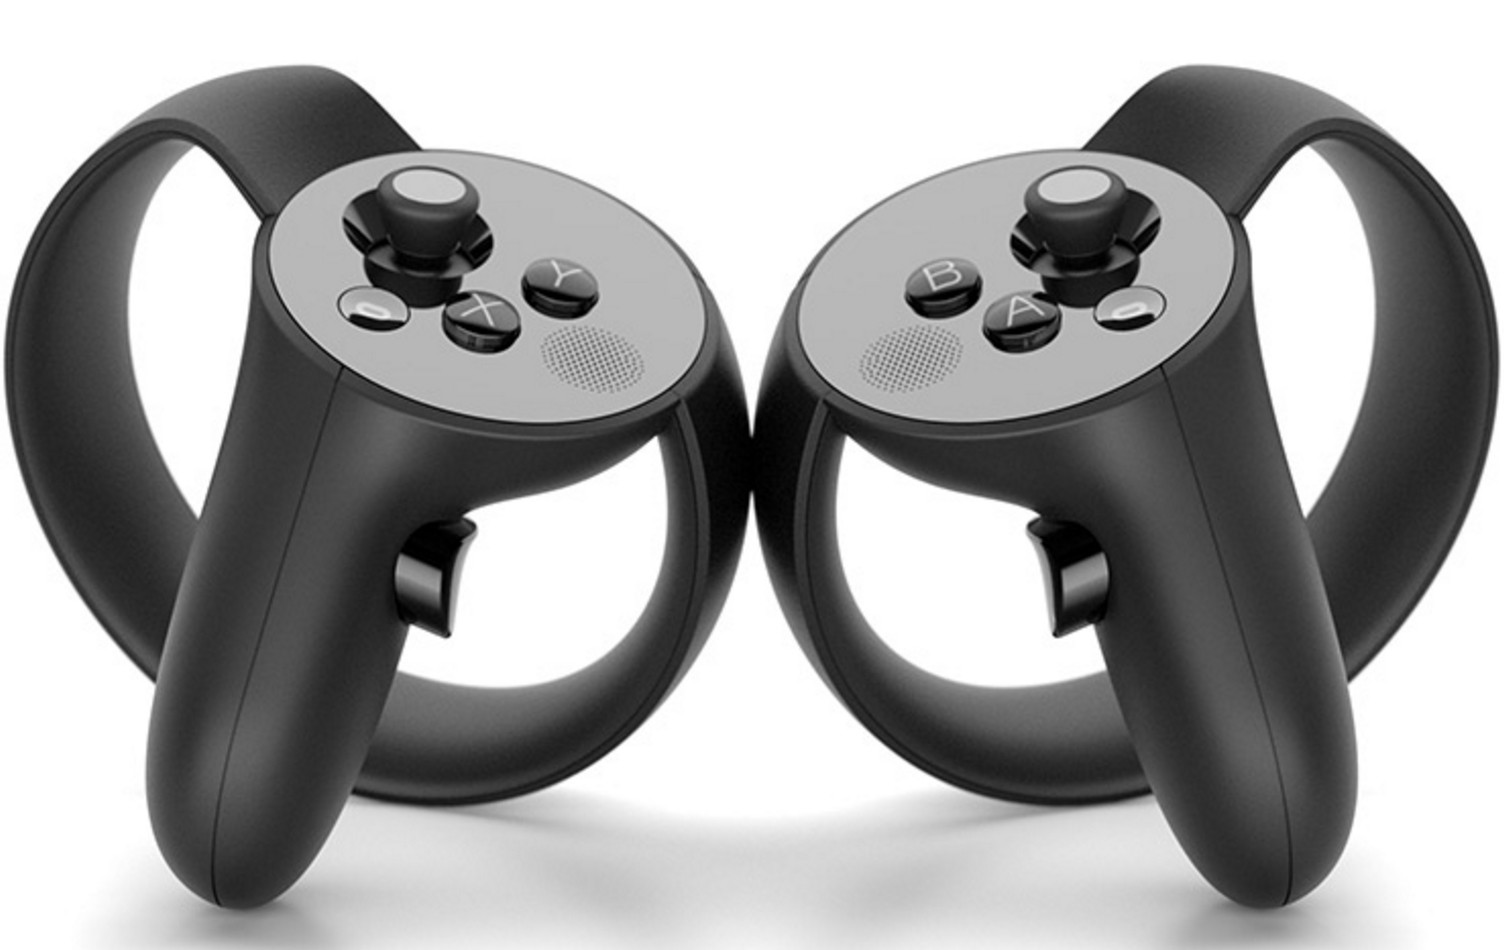 Touch controllers